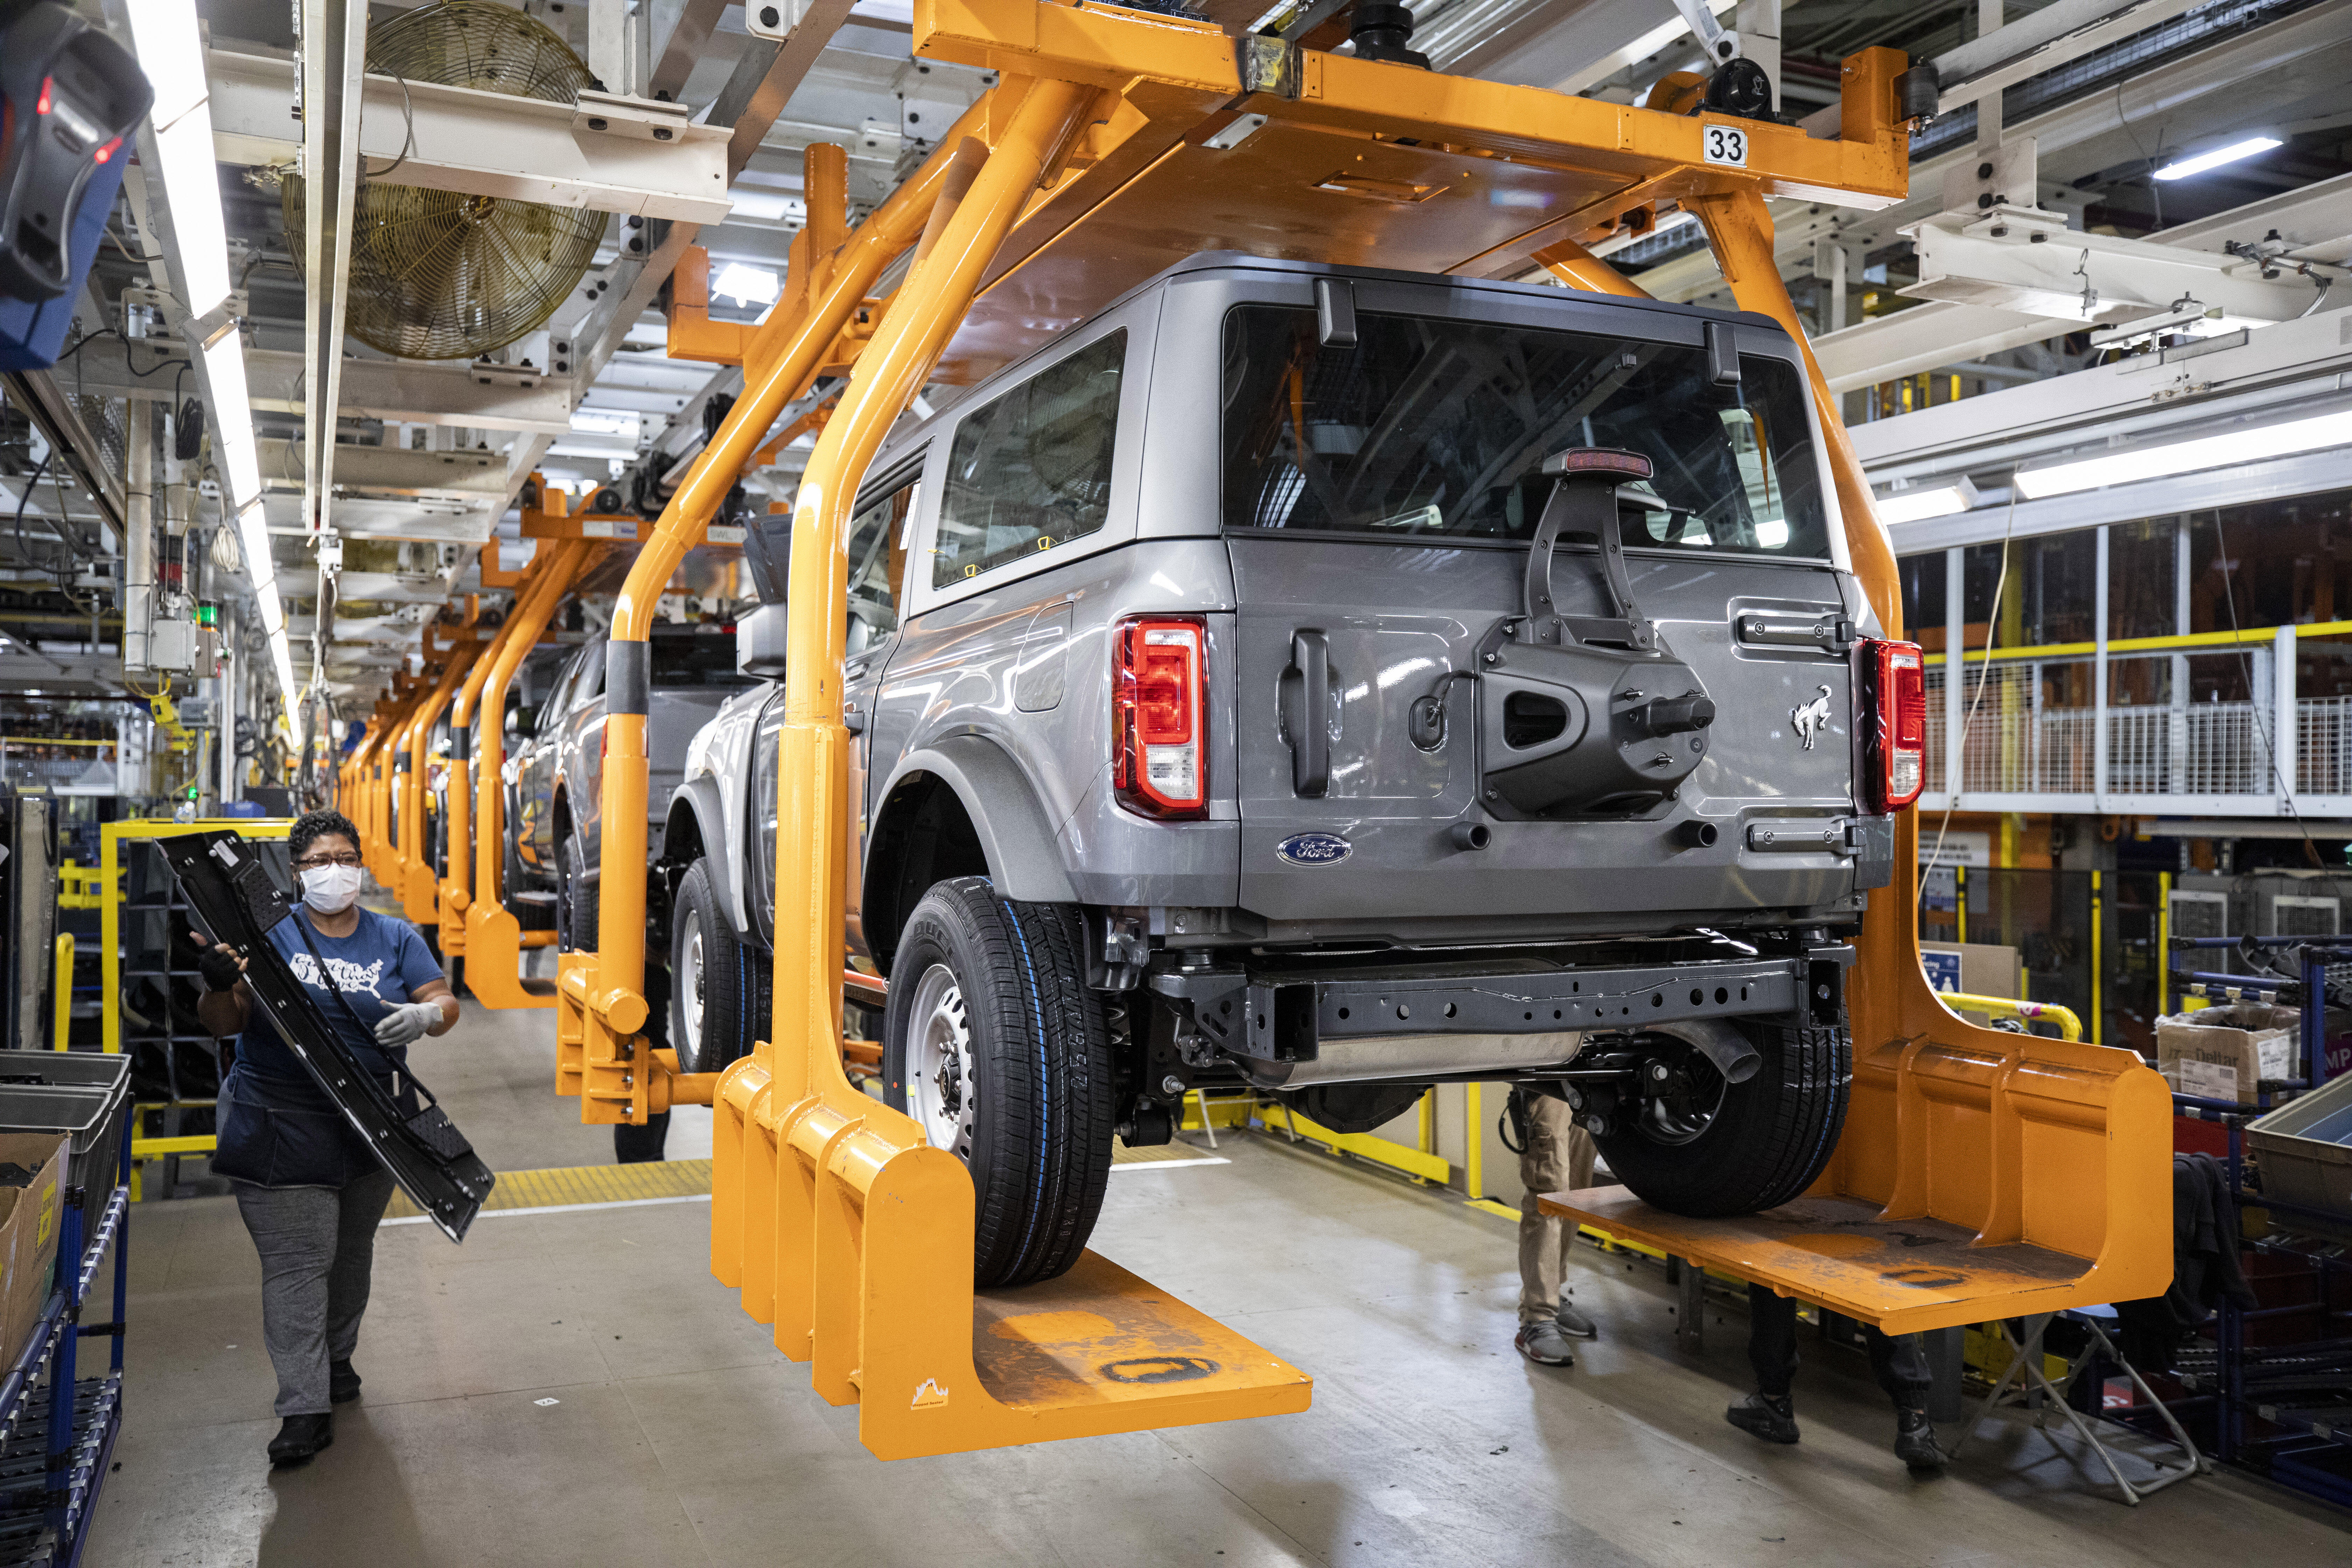 2021 Ford Bronco production line